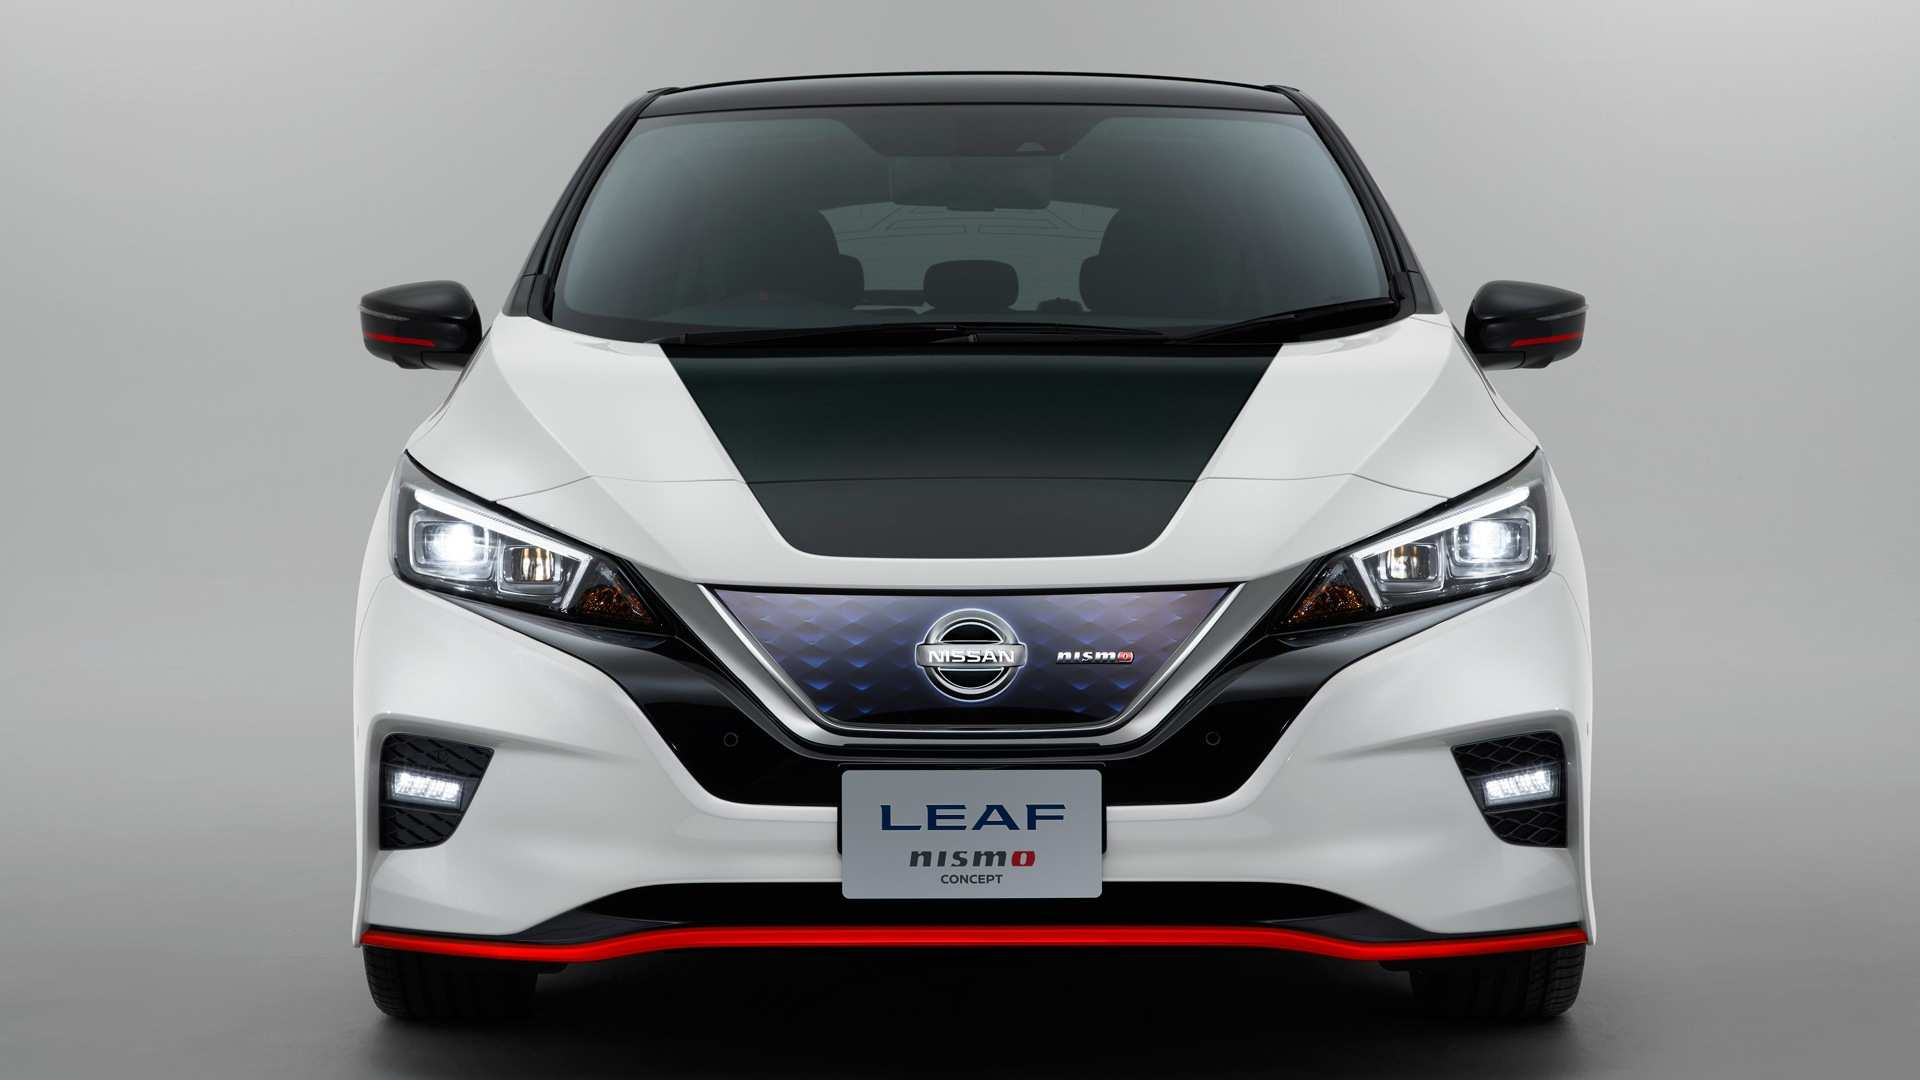 64 The Nissan Leaf 2020 Video Download Performance And New Engine